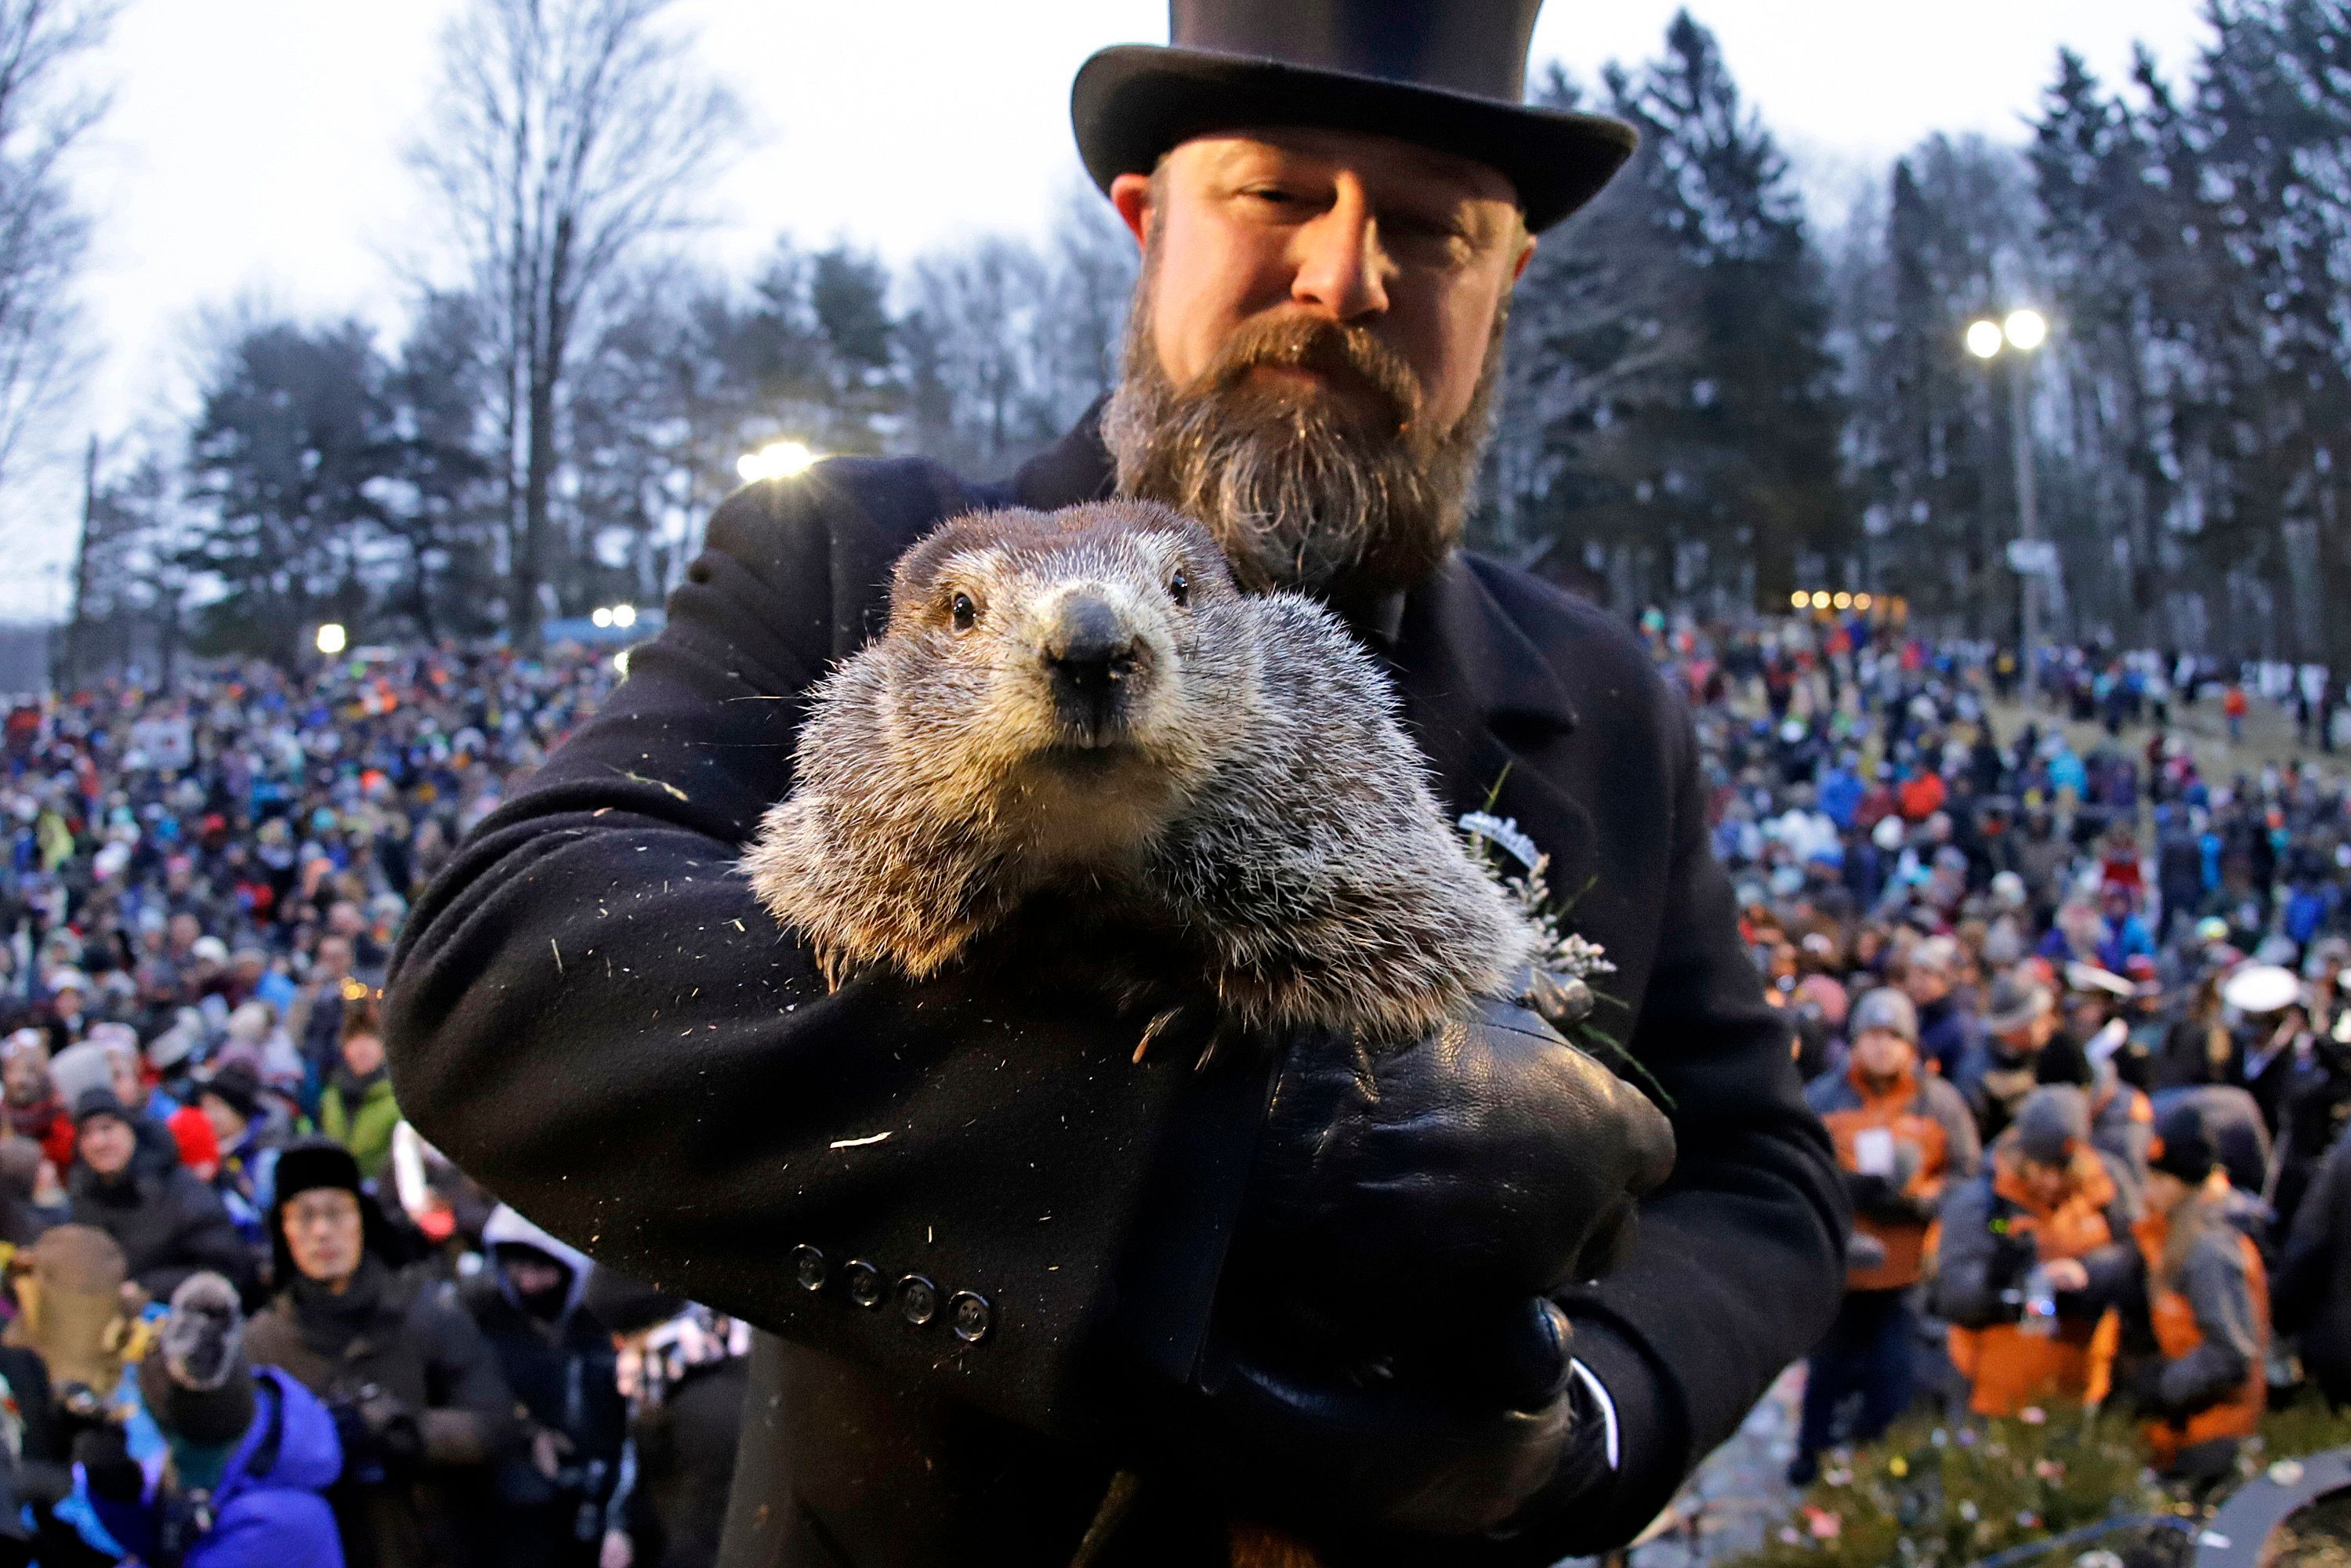 Groundhog Club co-handler Al Dereume holds Punxsutawney Phil, the weather prognosticating groundhog, in front of the crowd gathered for the 133rd celebration of Groundhog Day on Gobbler's Knob in Punxsutawney, Pa. Saturday, Feb. 2, 2019. Phil's handlers said that the groundhog has forecast an early spring. (AP Photo/Gene J. Puskar)